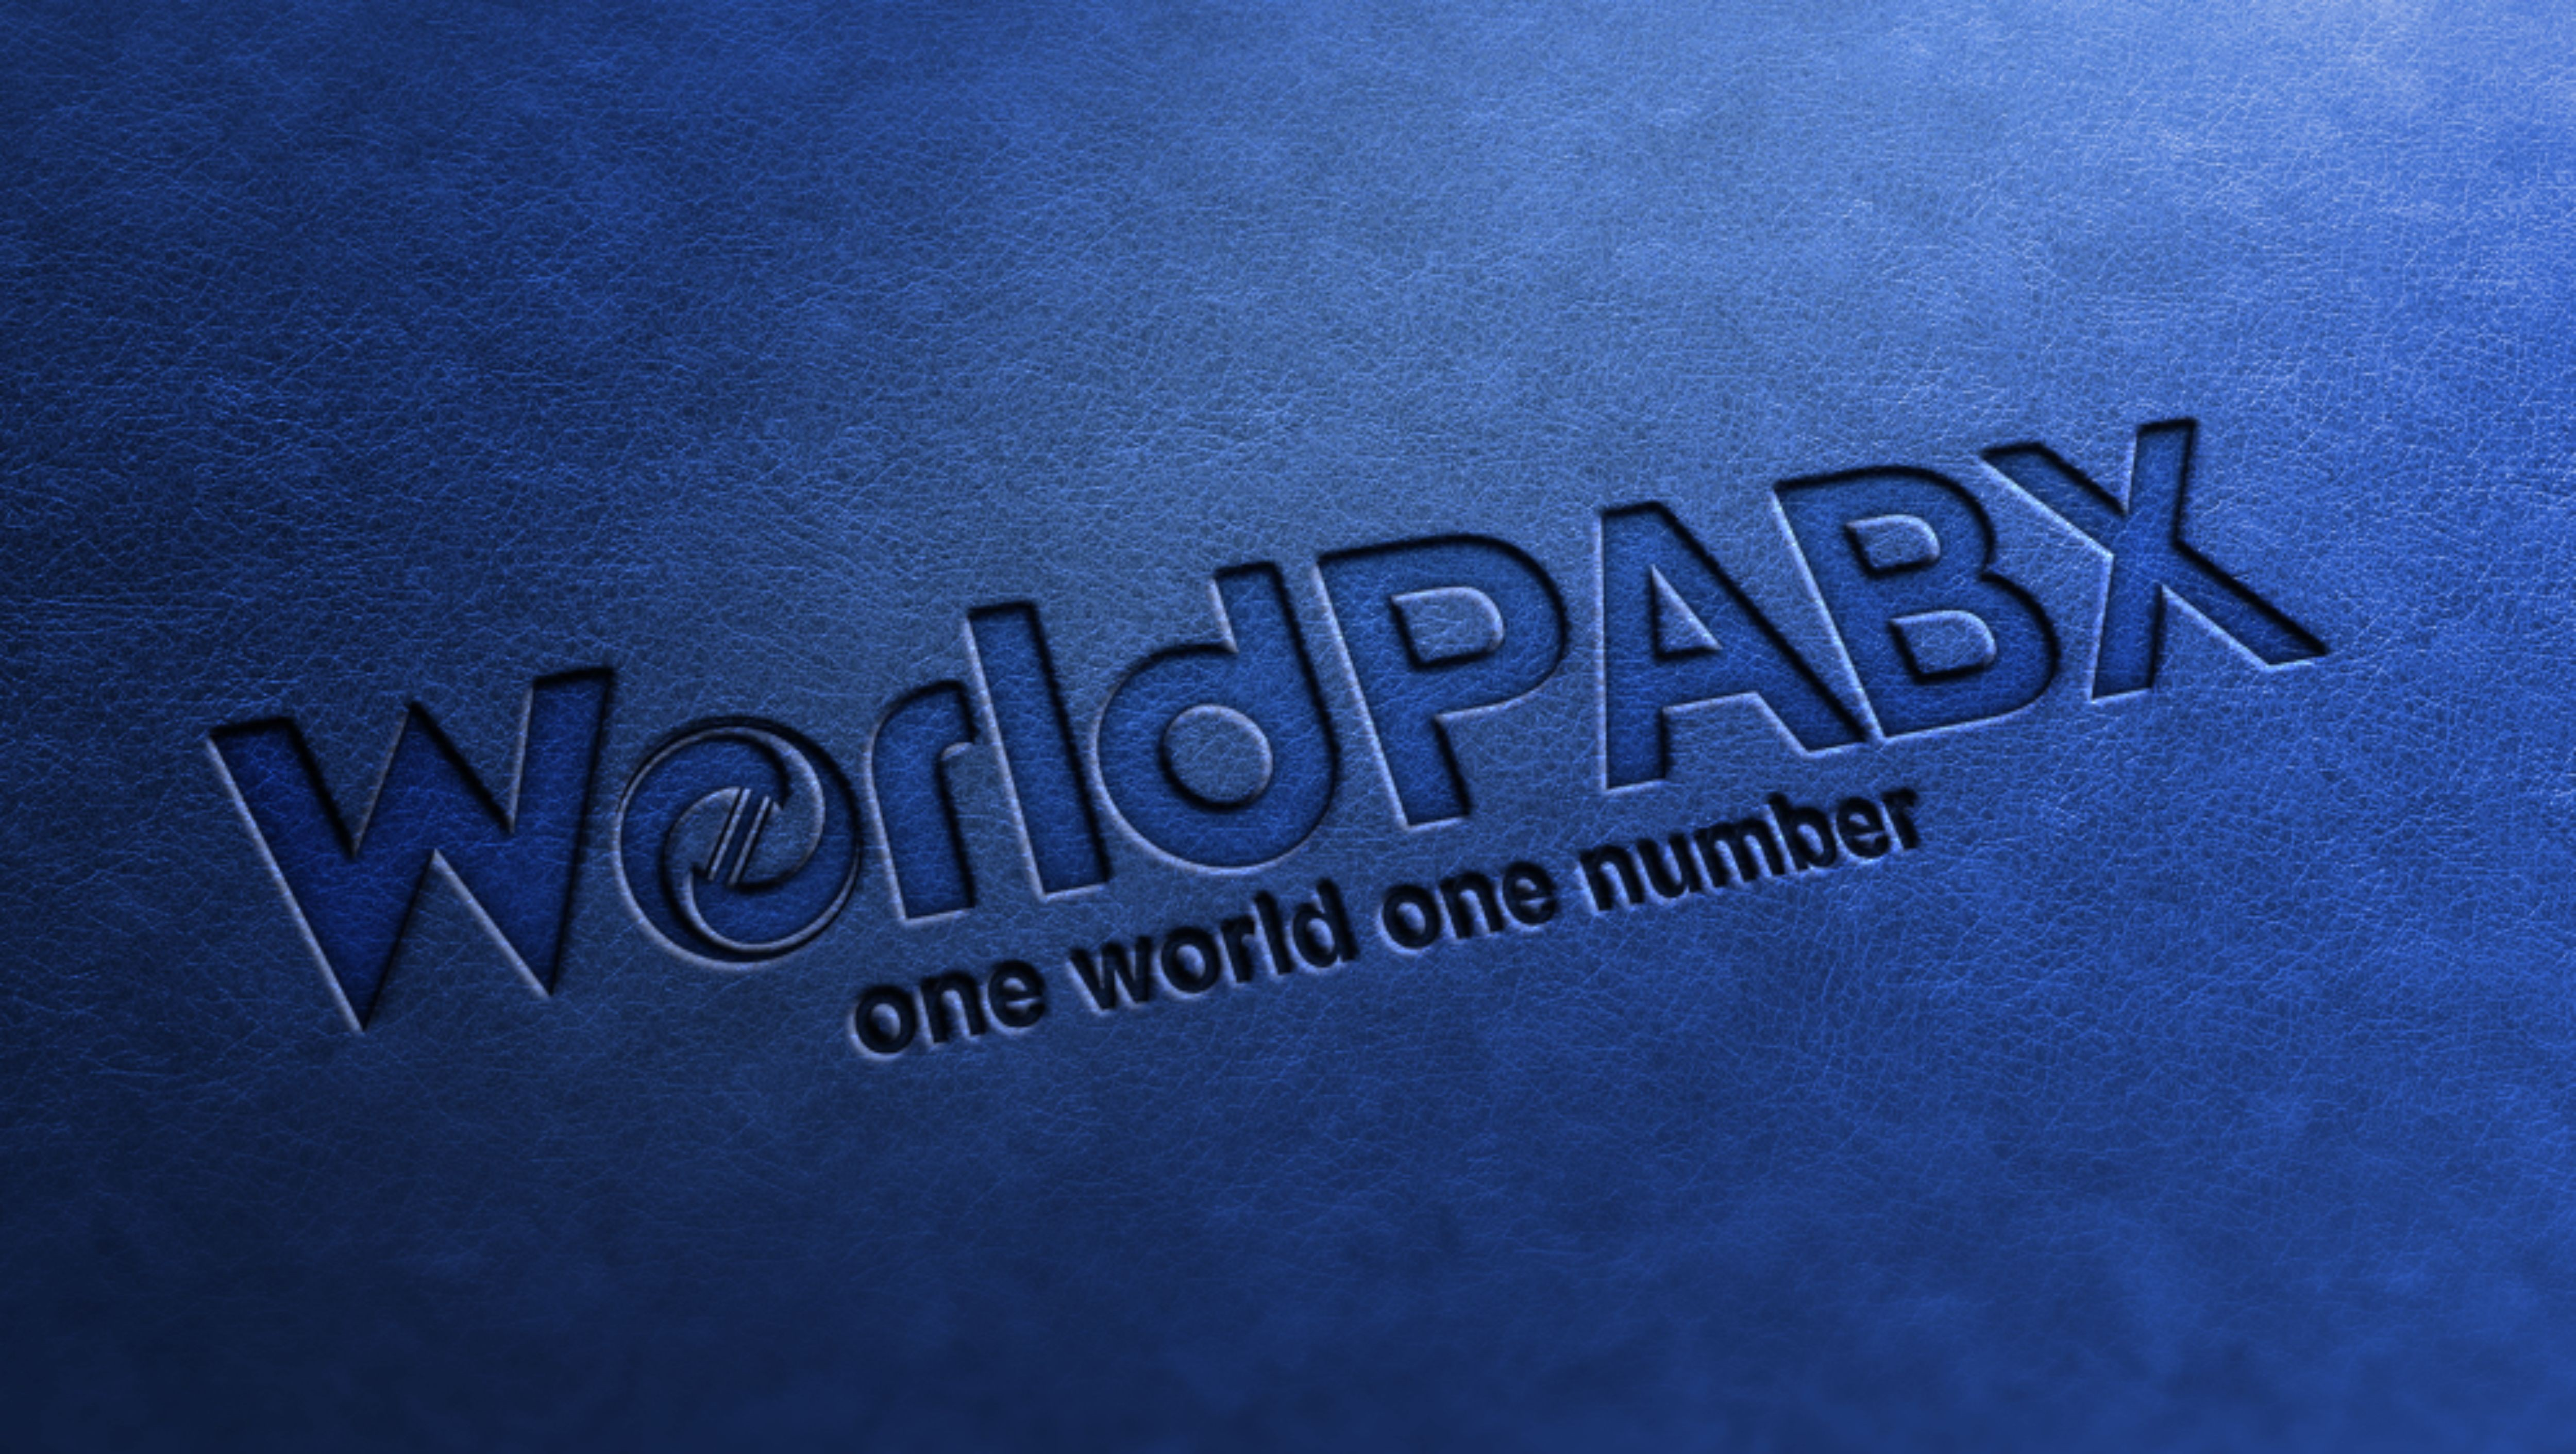 Design a modern Globe Style logo for WorldPABX - please read brief carefully